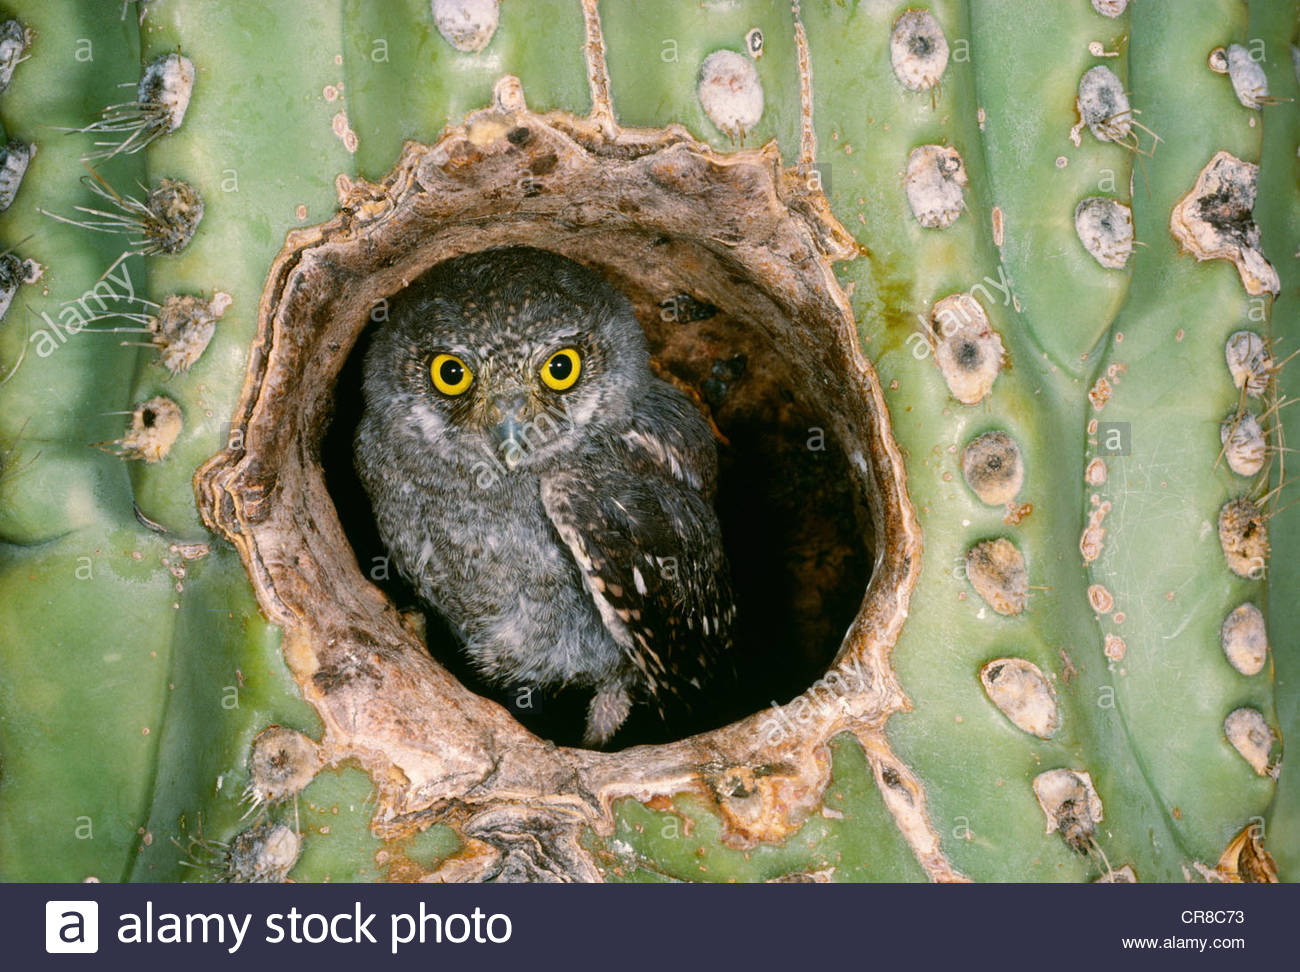 Owlet Elf dans Saguaro Cactus, Arizona Photo Stock